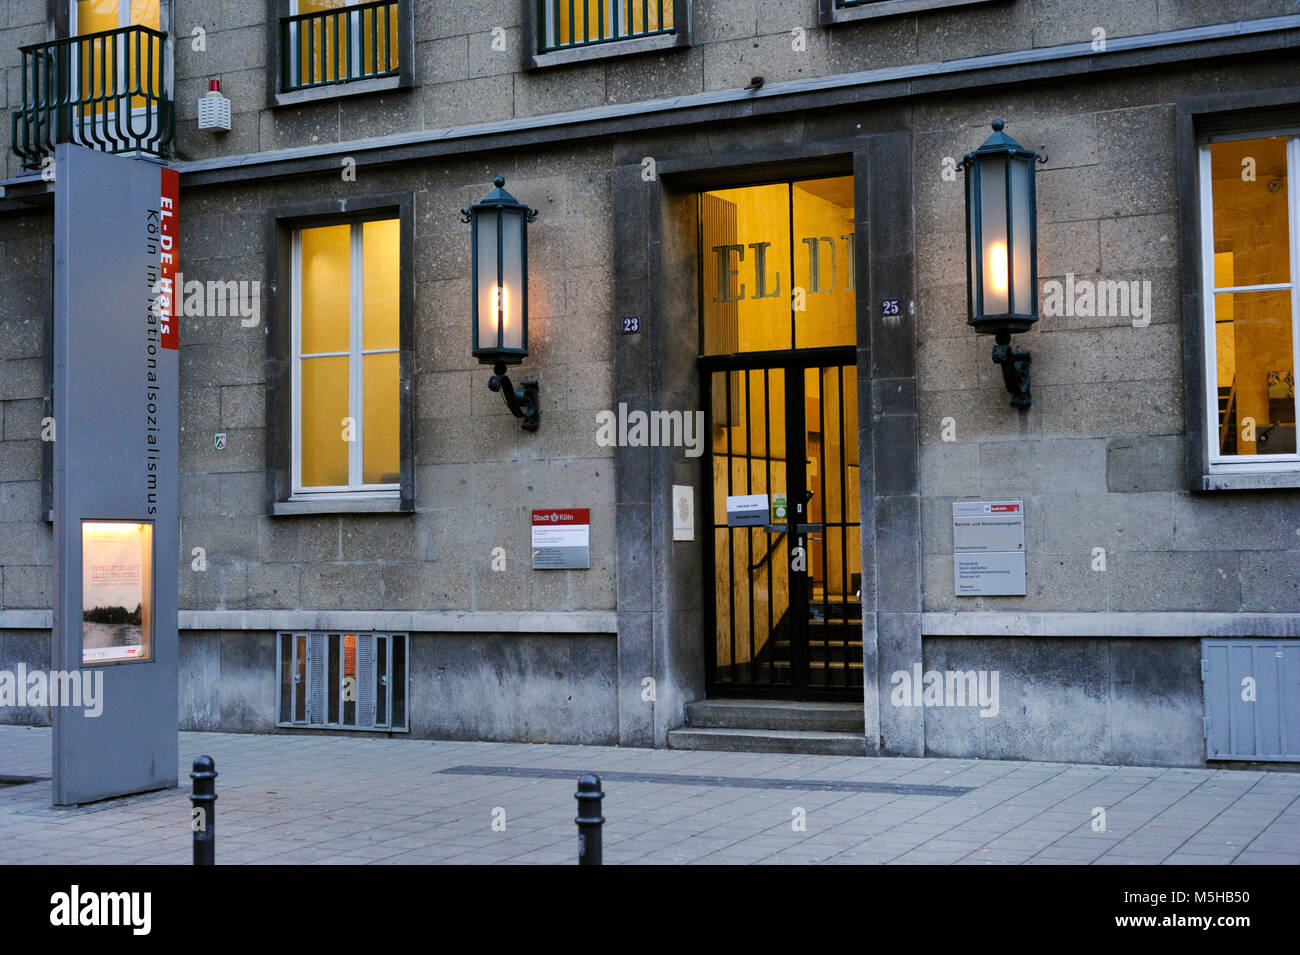 National Socialism Documentation Center. Memorial Museum of the Gestapo Prison in the EL-DE House. Founded in 1979. - Stock Image